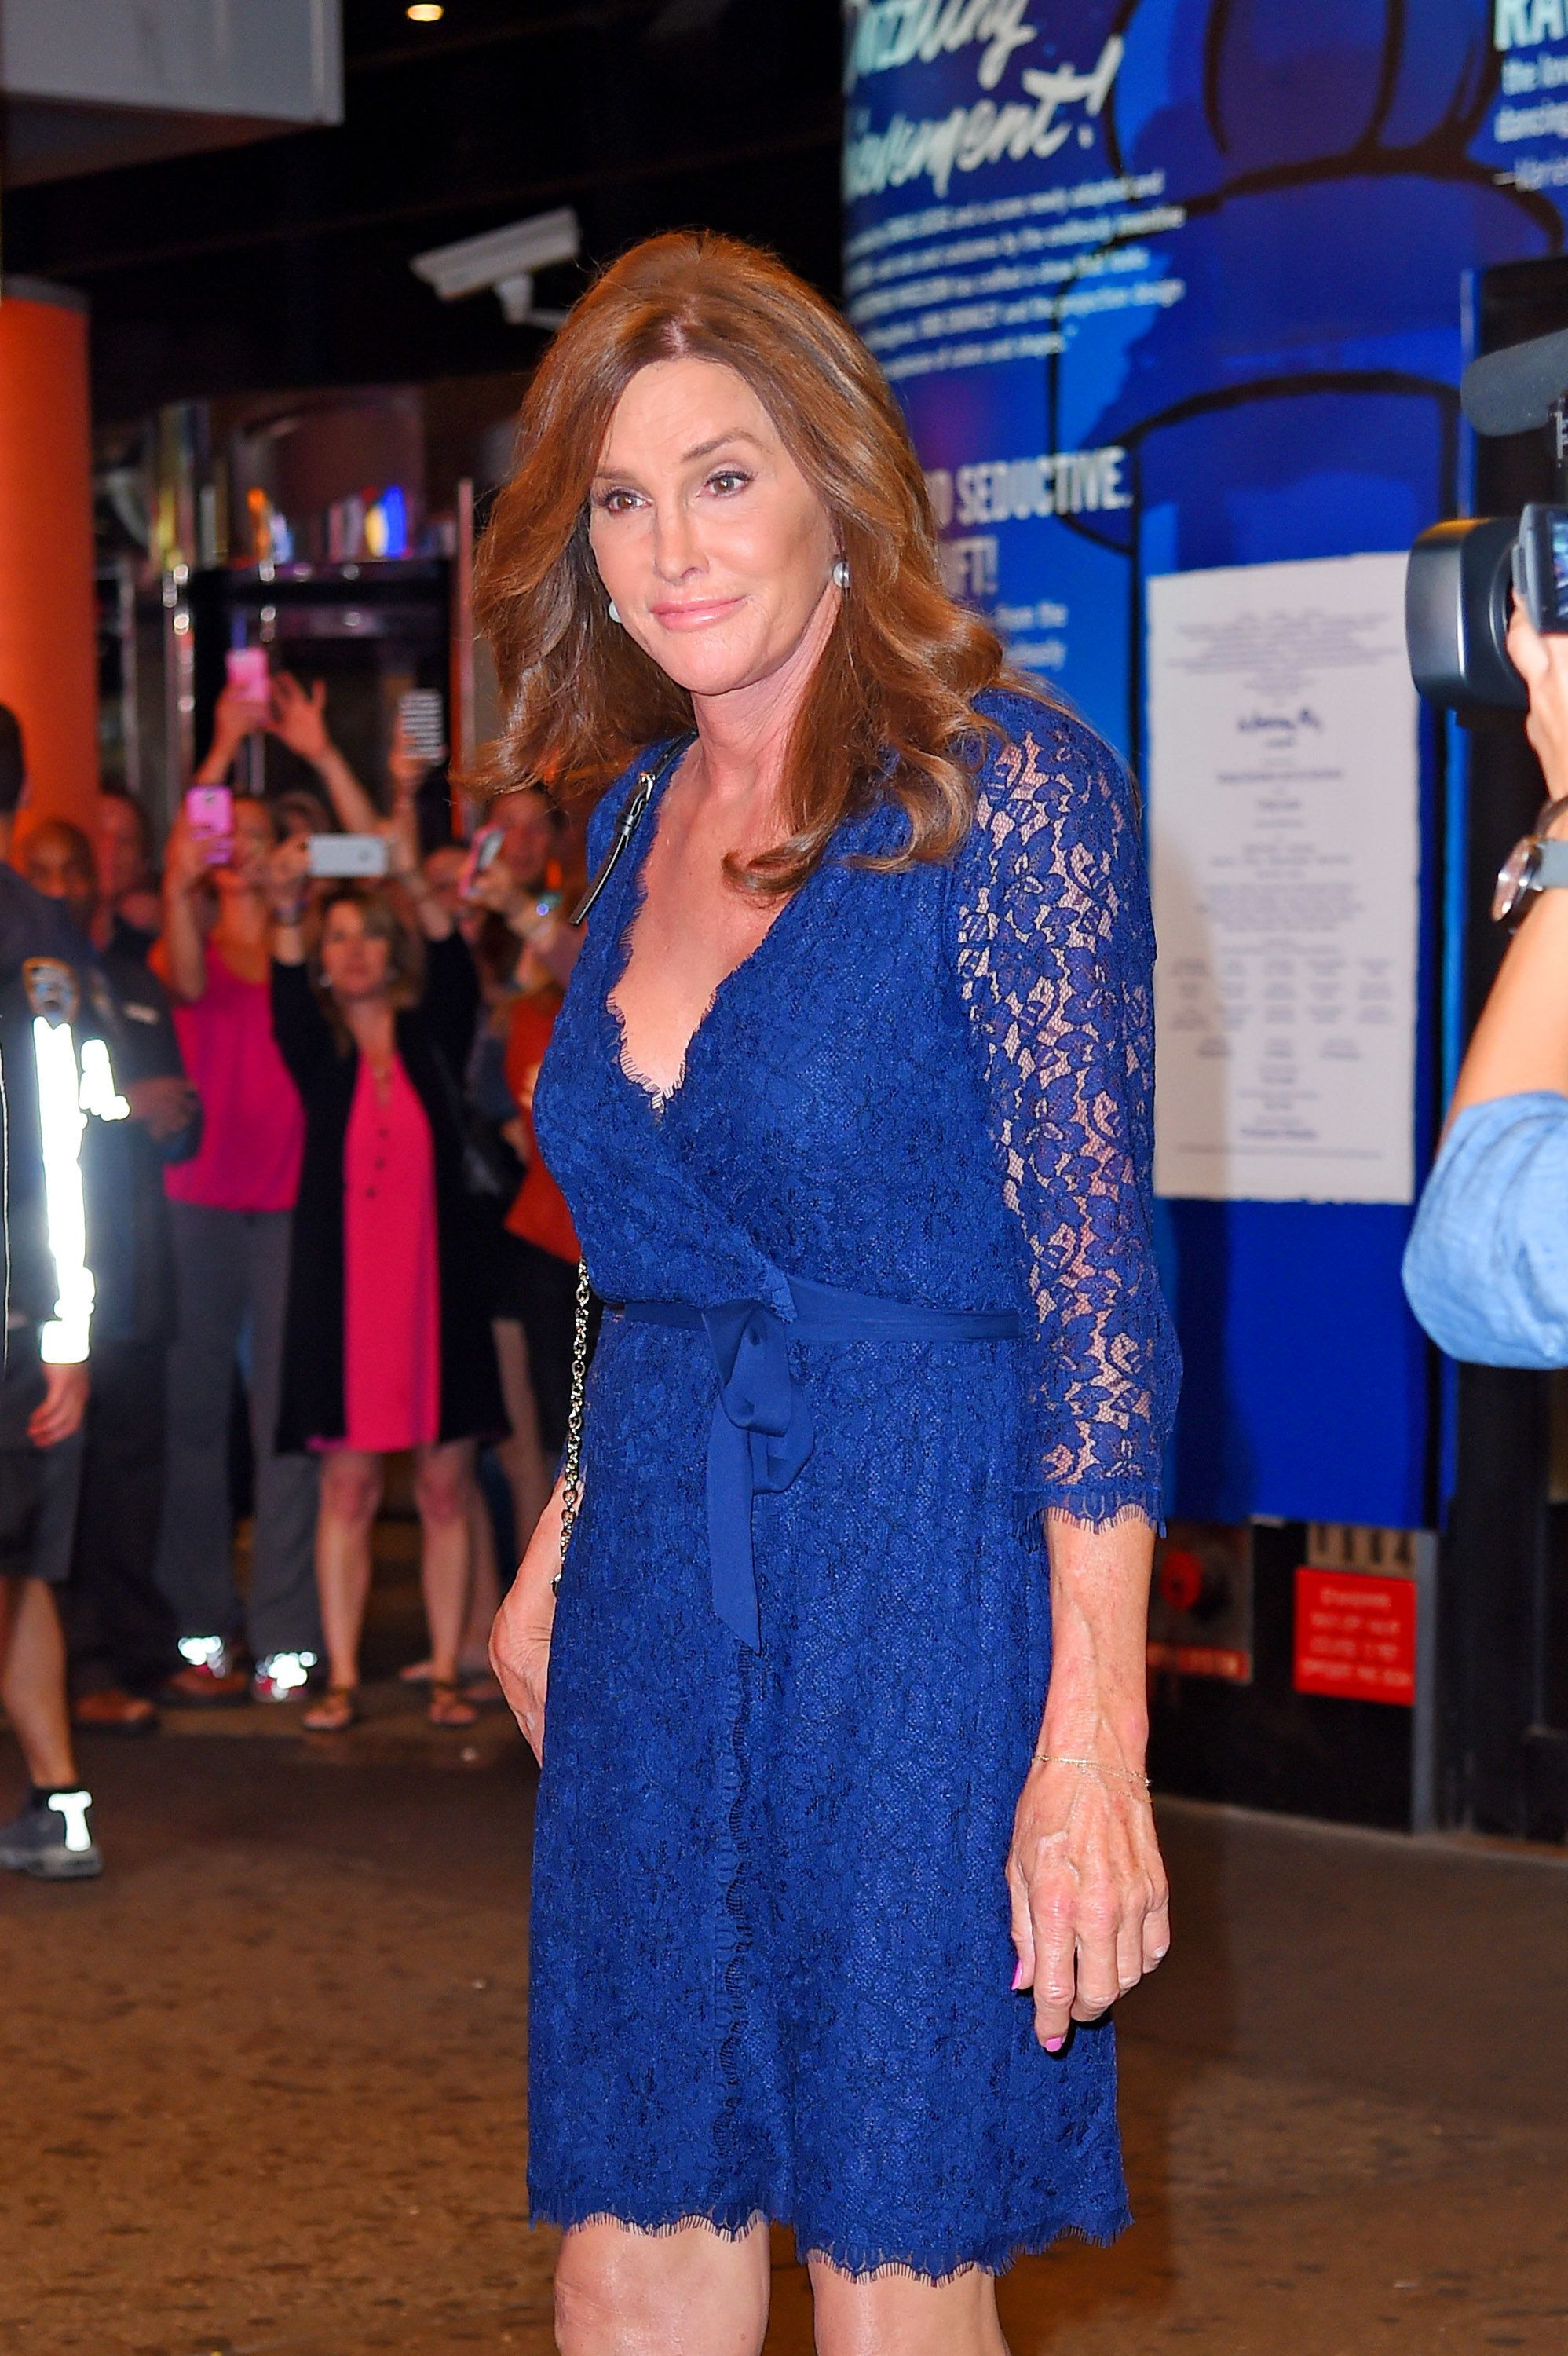 NEW YORK - JUNE 30: Caitlyn Jenner seen leaving 'An American in Paris' Broadway show in a bright blue lace dress on June 30, 2015 in New York, New York.  (Photo by Josiah Kamau/BuzzFoto via Getty Images)